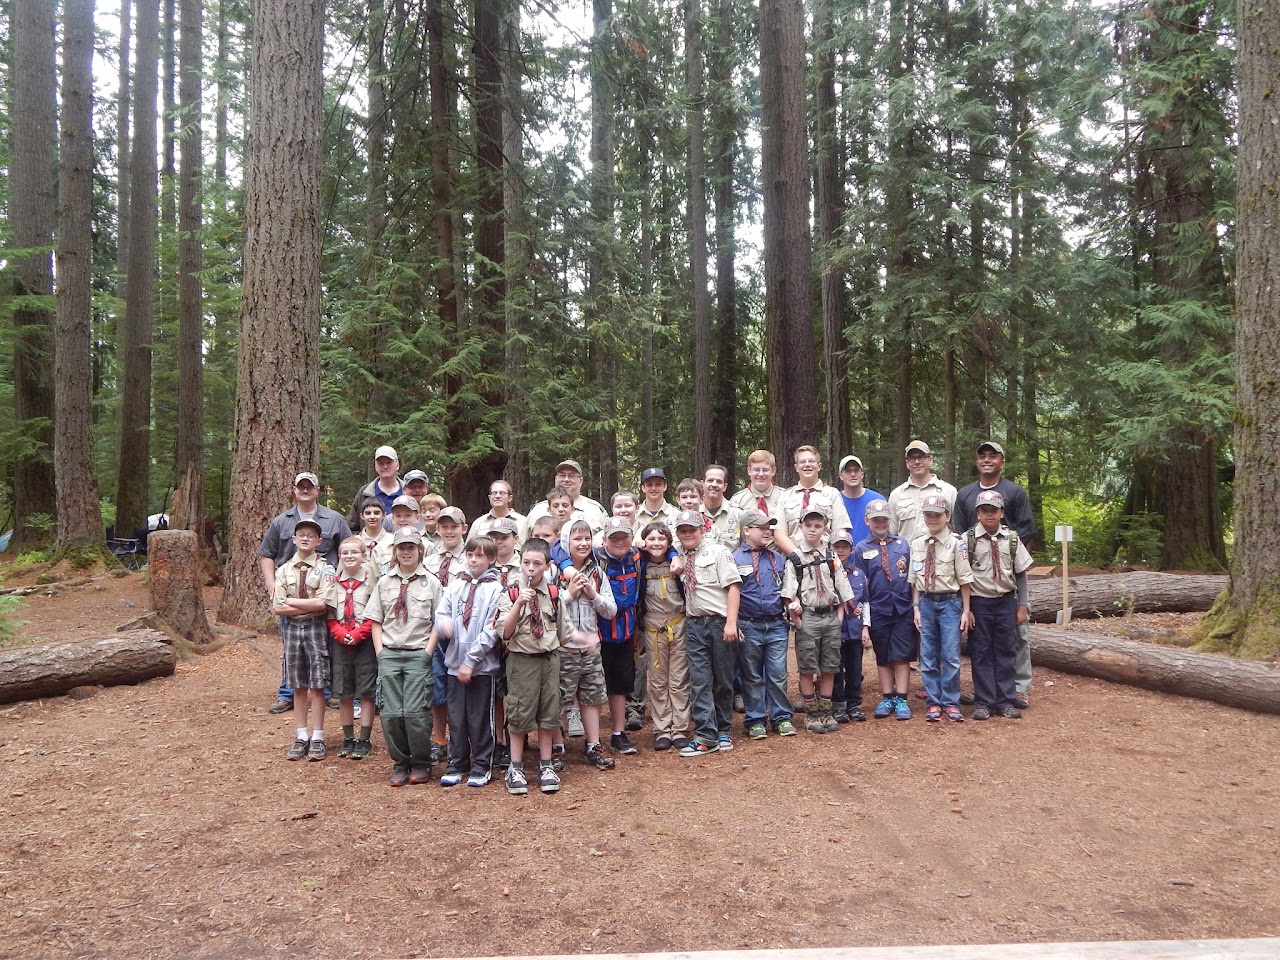 Webelos Weekend 2014 - DSCN2008.JPG